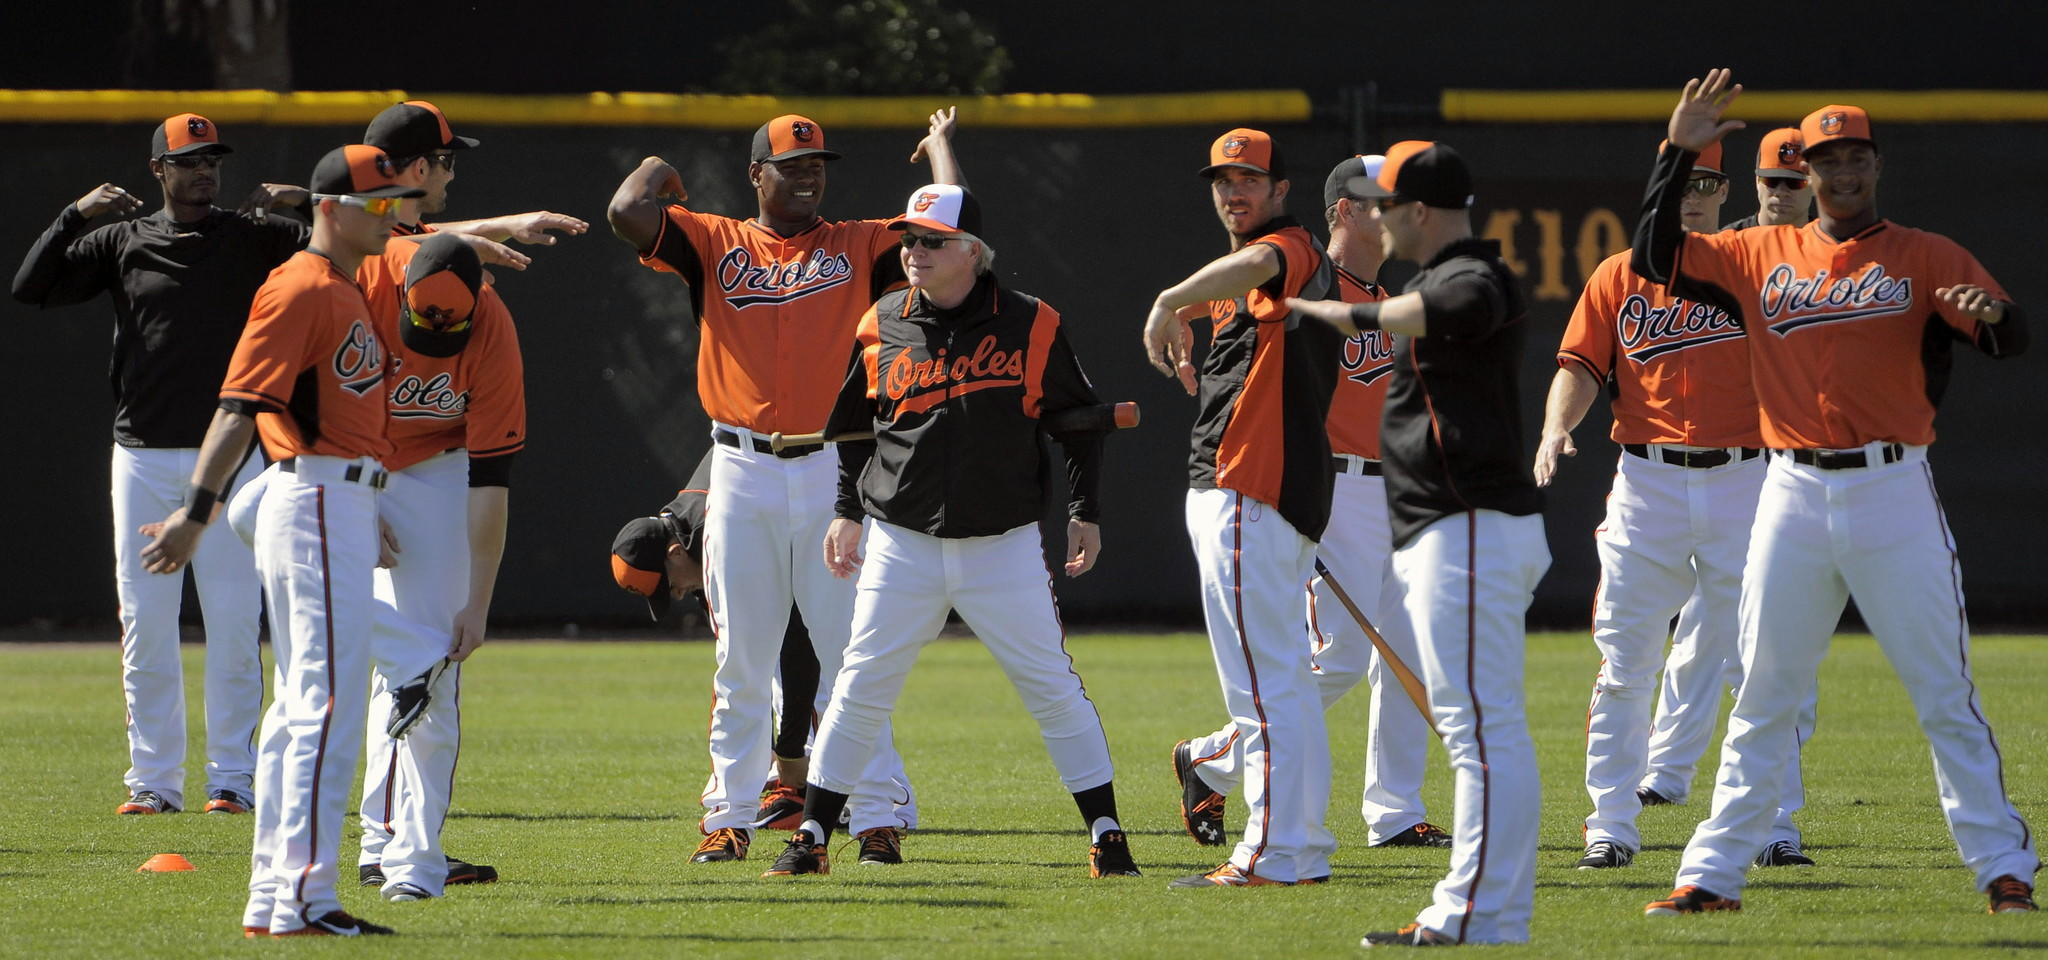 Orioles manager Buck Showalter smiles while standing among his players during the first official day of spring training workouts at the club's facility in February.